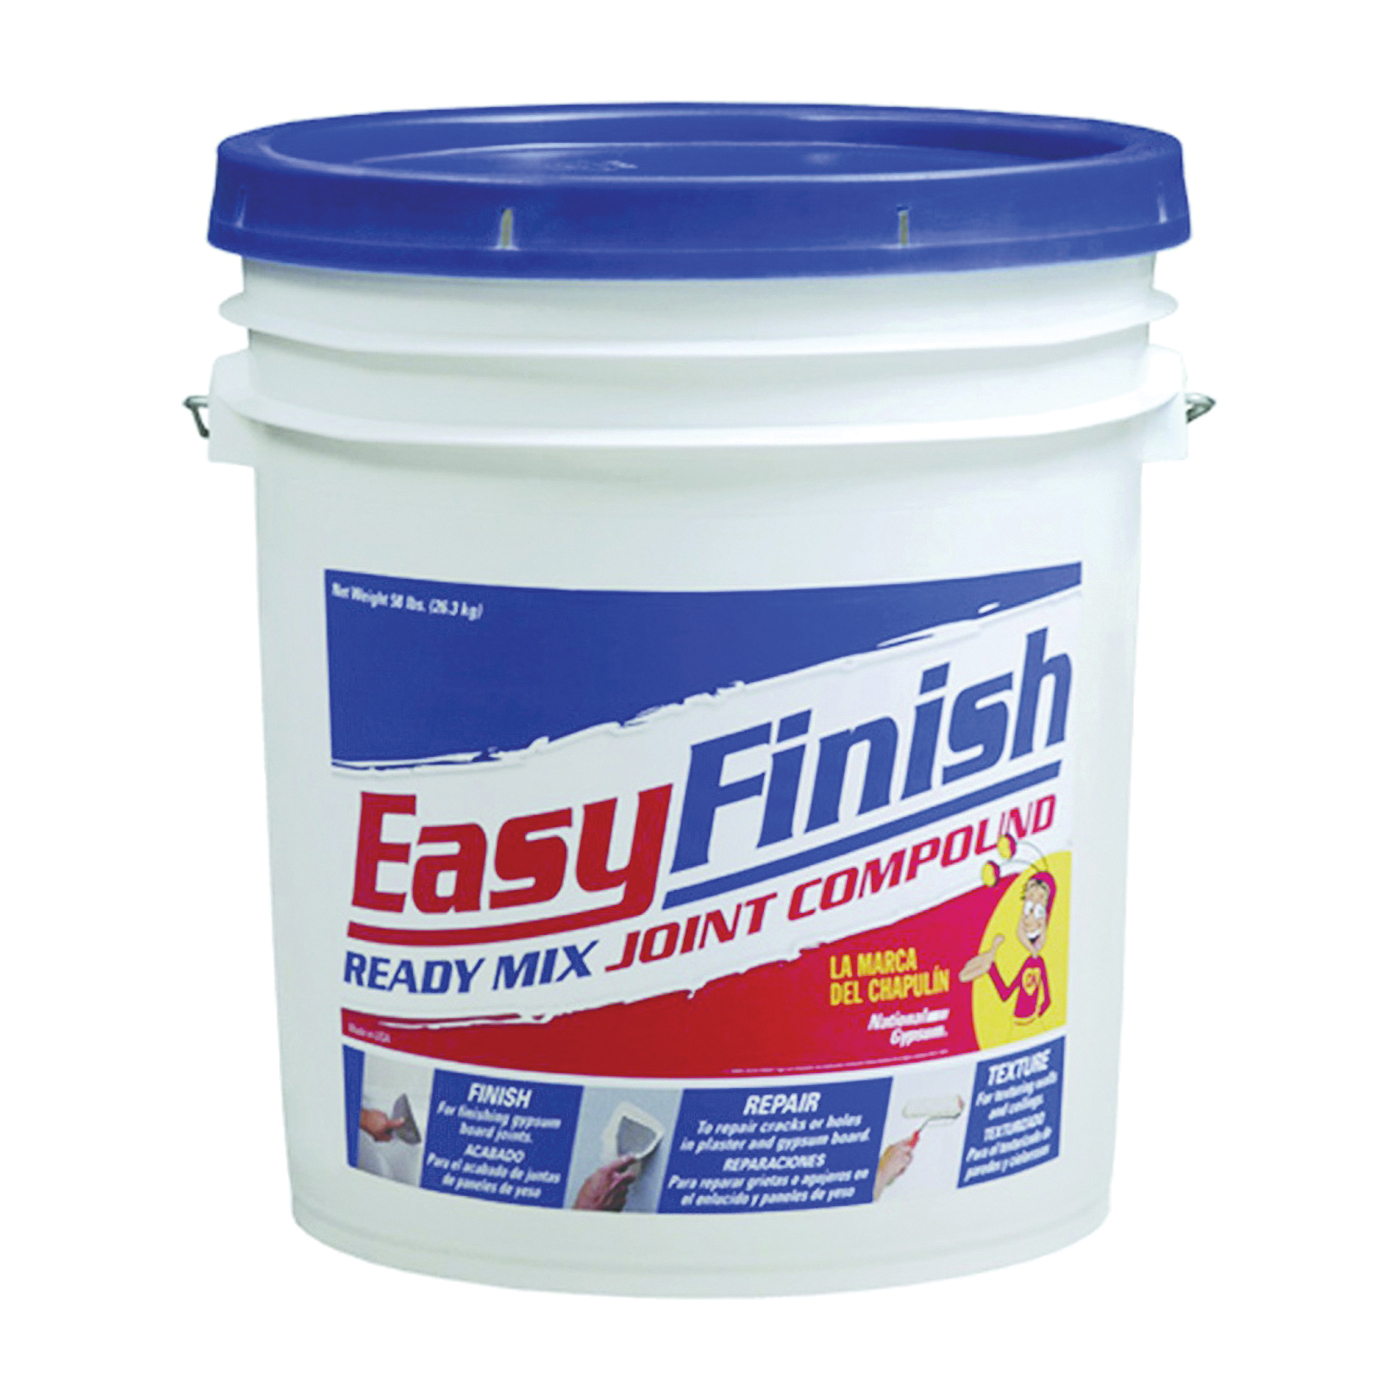 Picture of Easy Finish JT0056/80095 Joint Compound, Paste, Gray, 58 lb Package, Pail